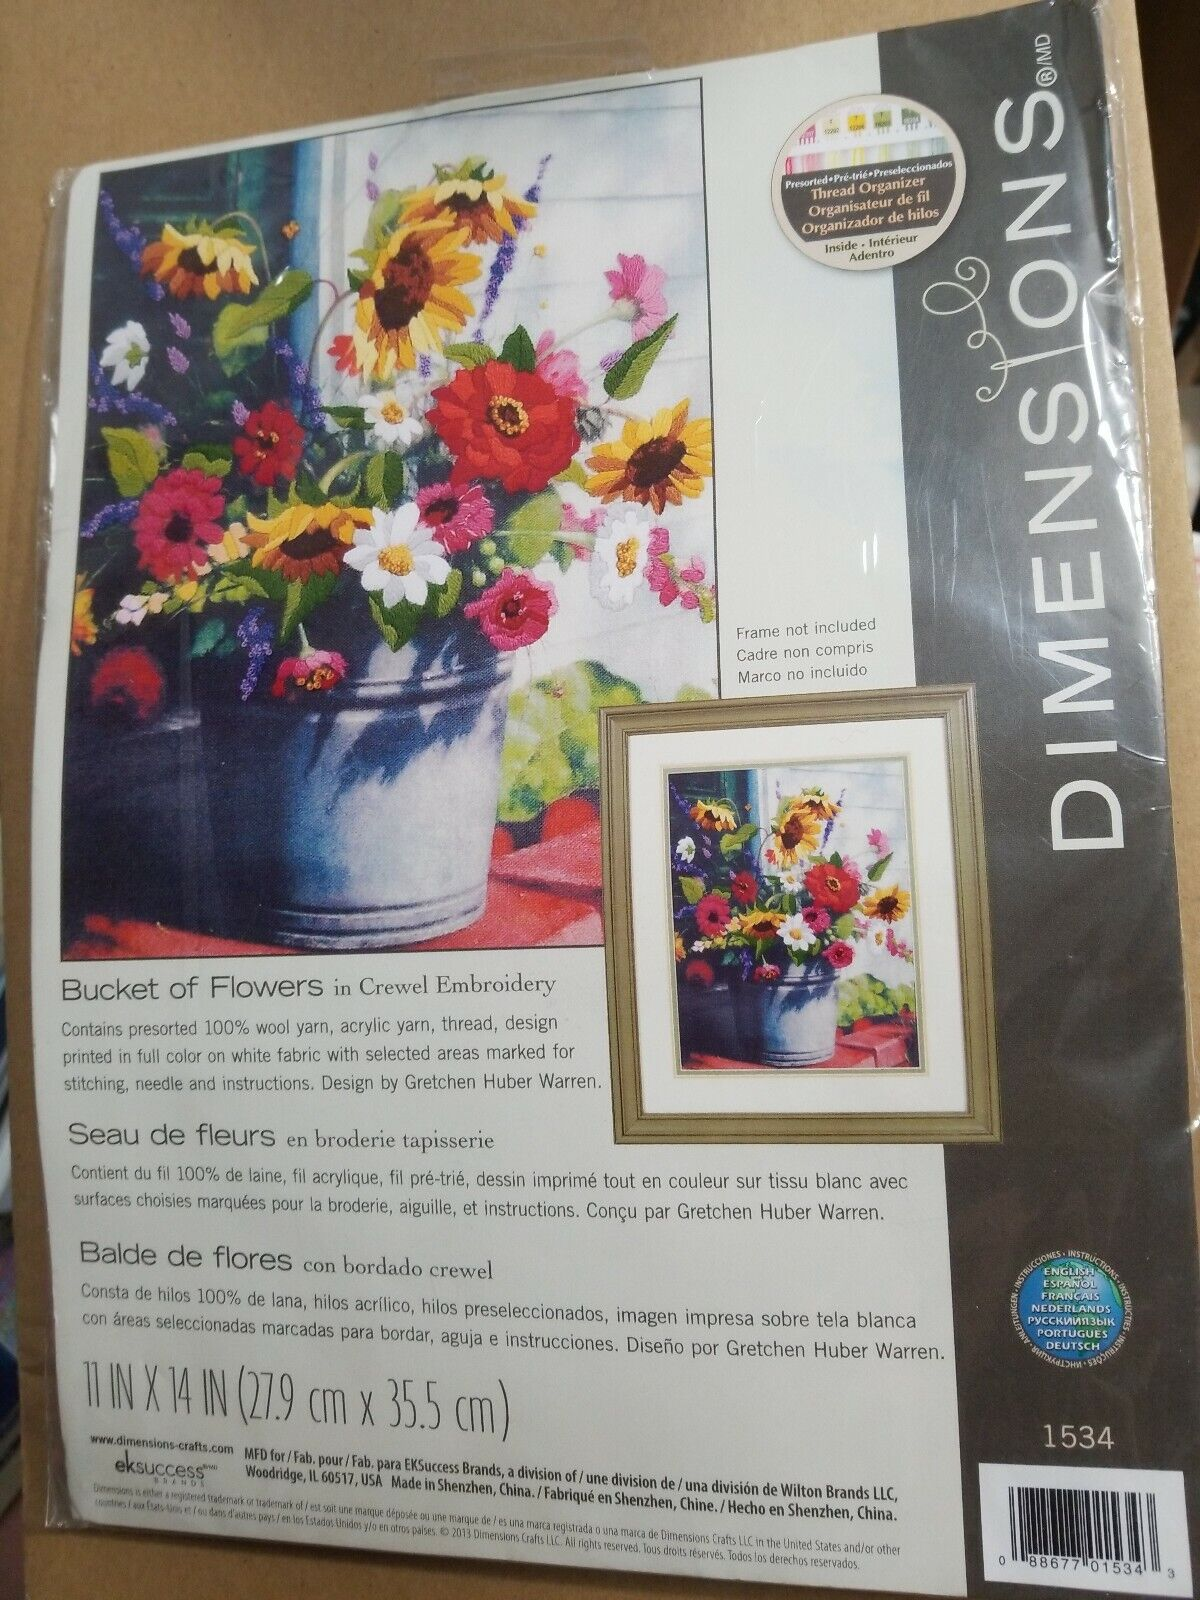 D01534 Dimensions Crewel Embroidery Kit Bucket of Flowers